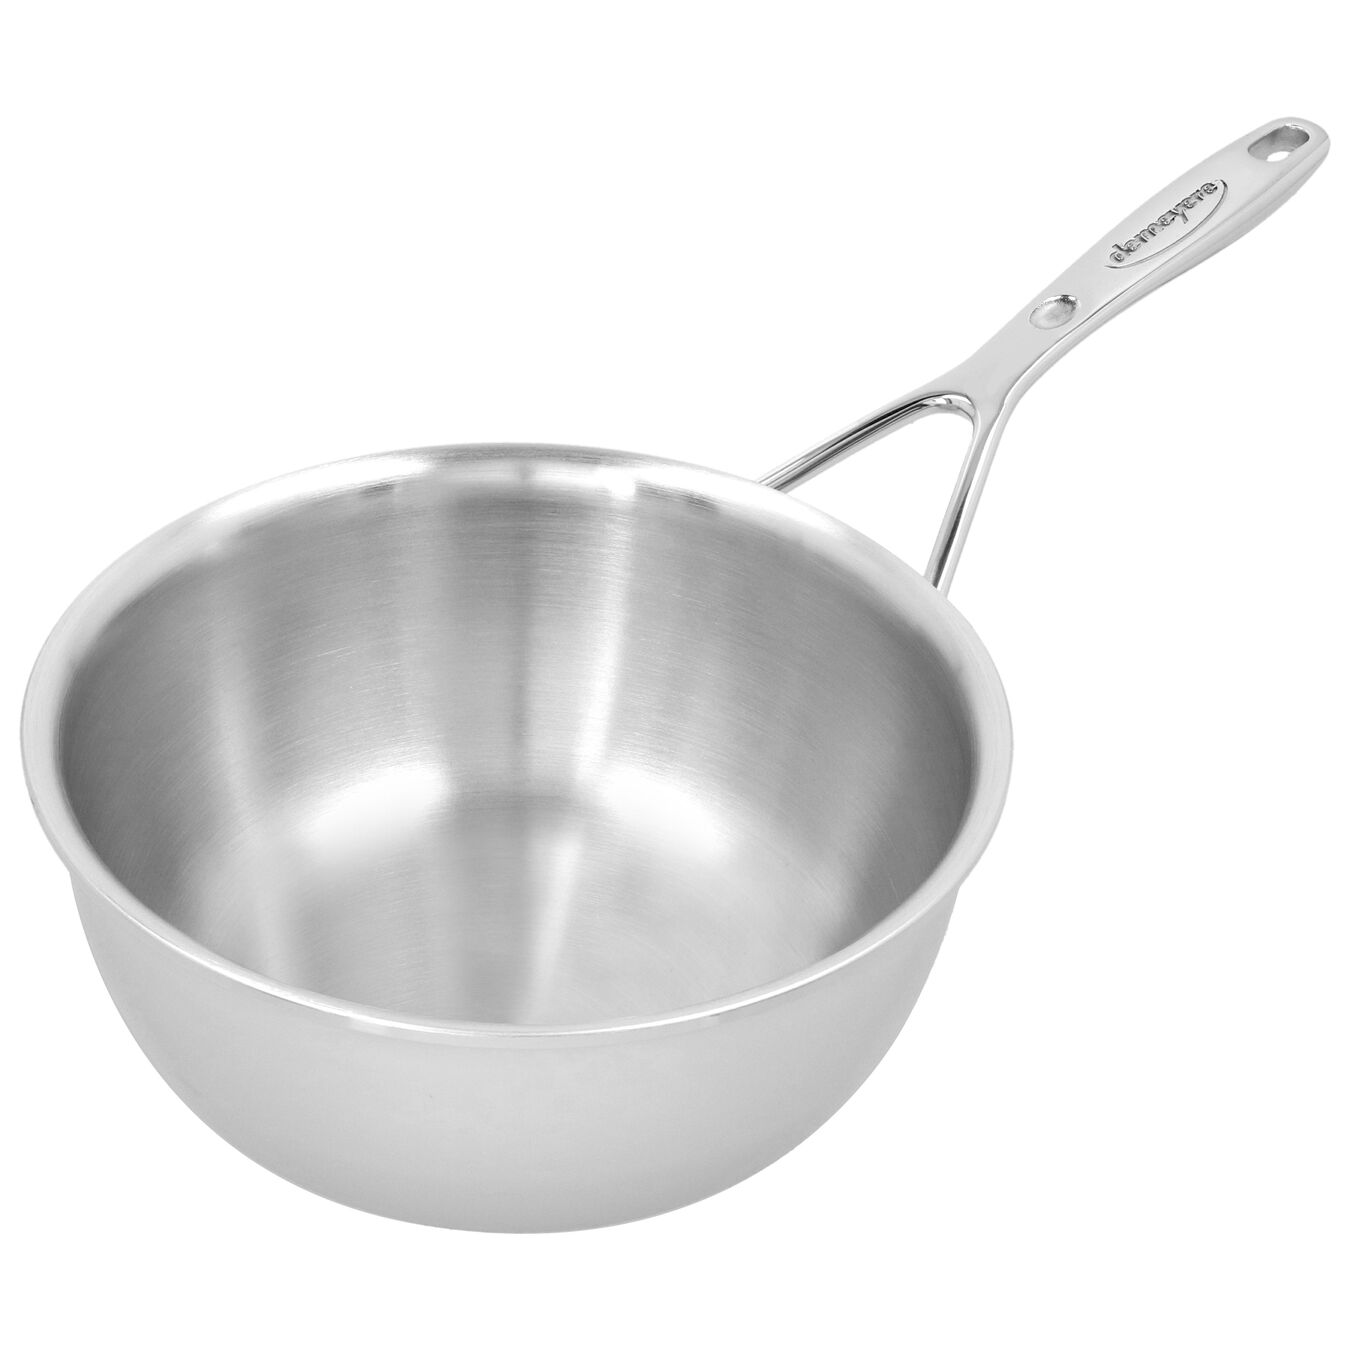 60-oz Sauteuse conical, 18/10 Stainless Steel ,,large 5